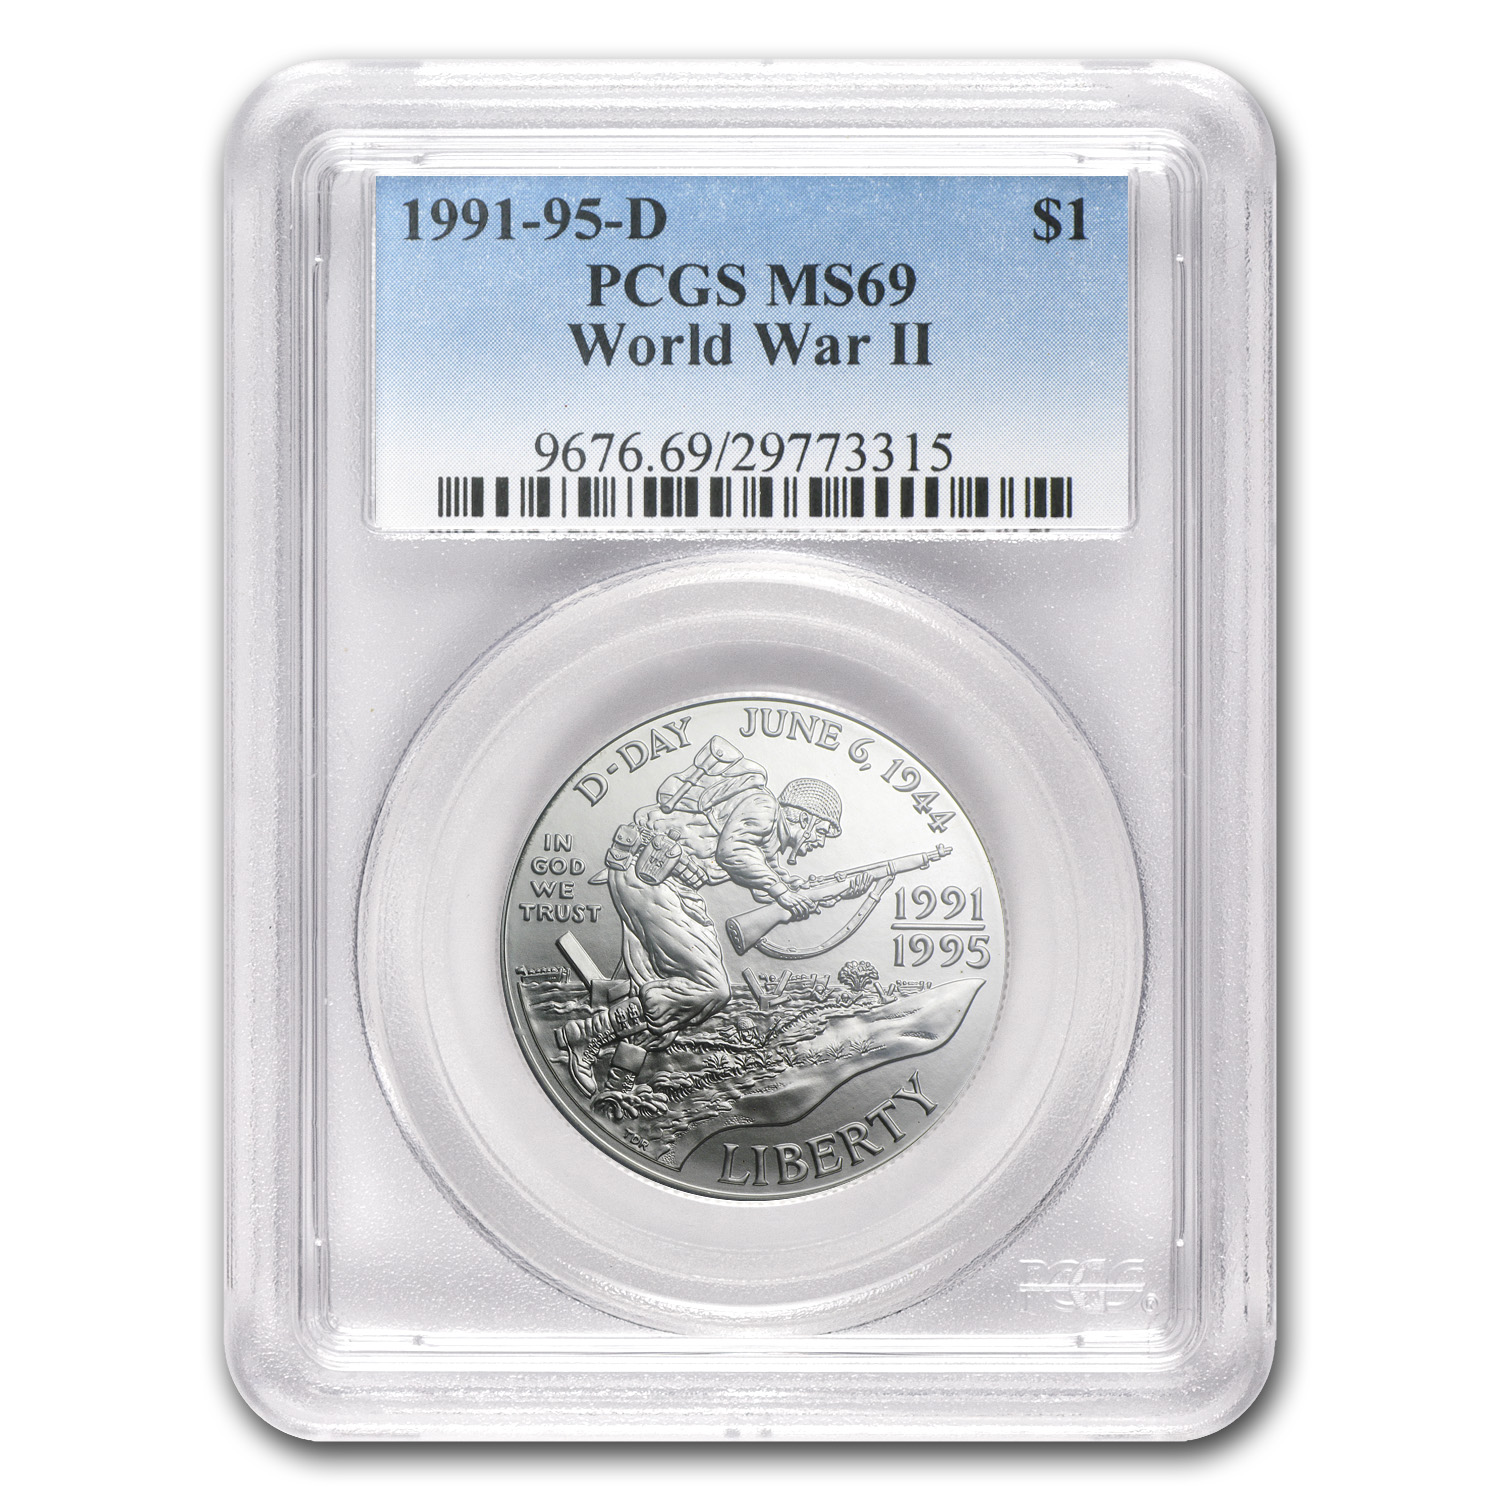 1993-D World War II $1 Silver Commemorative MS-69 PCGS